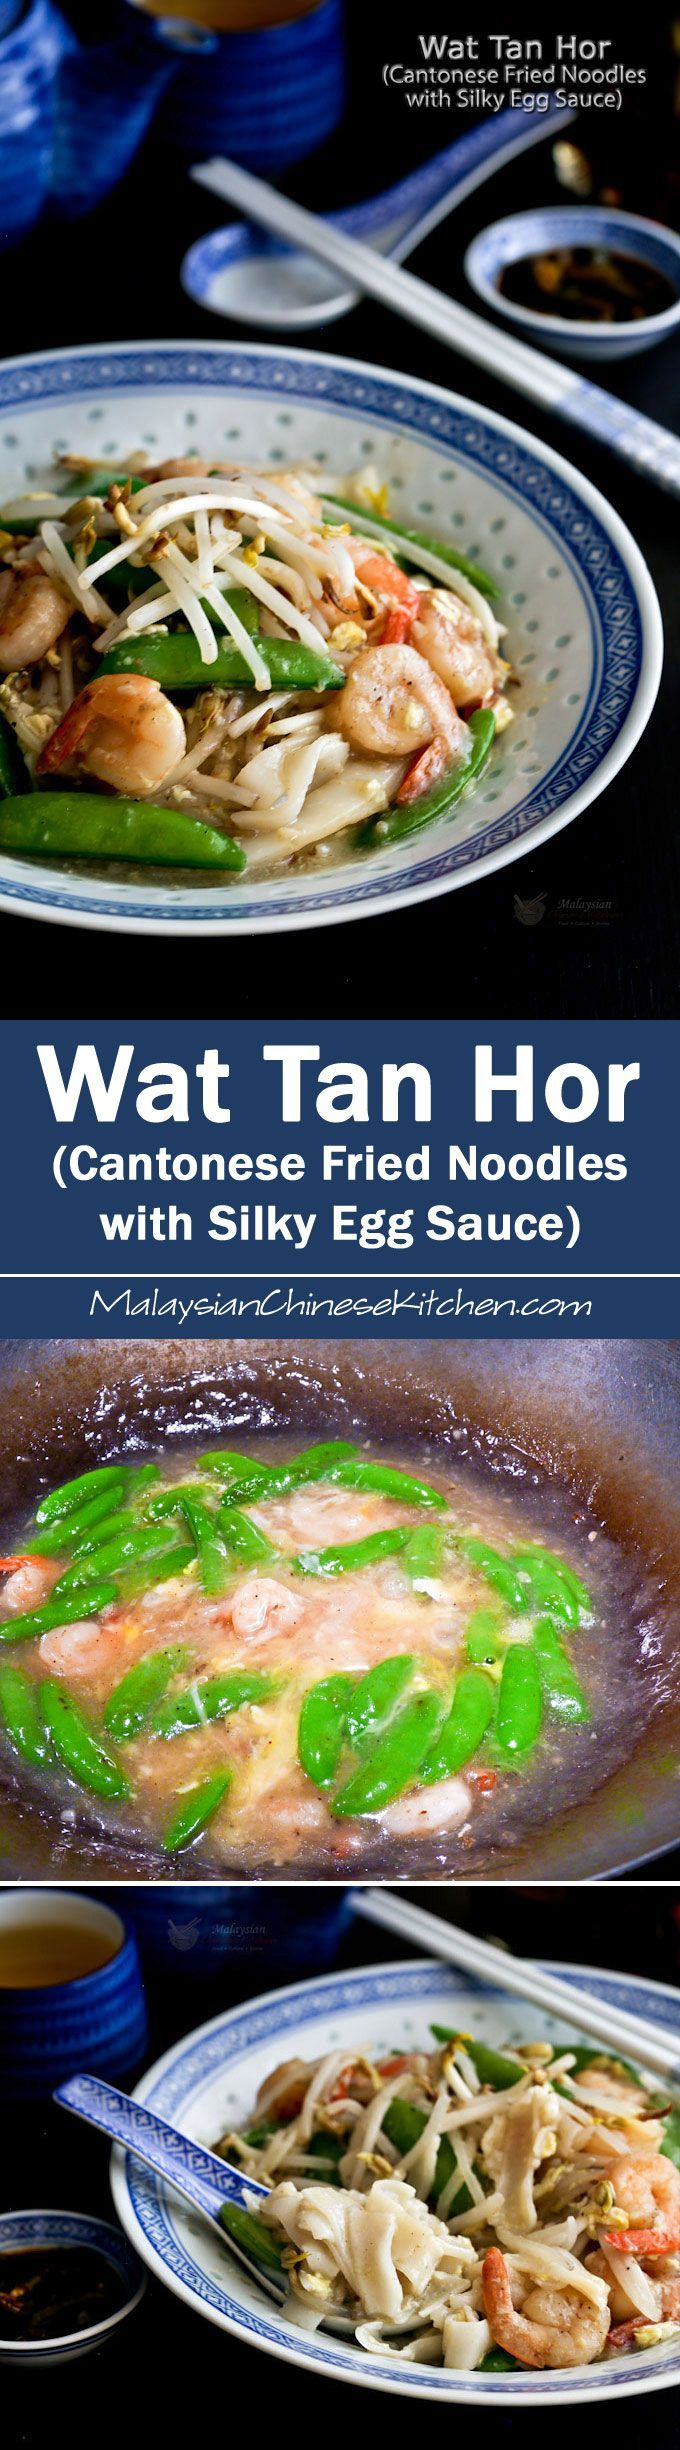 """Wat Tan Hor (Cantonese Fried Noodles with Silky Egg Sauce) a.k.a. """"kong foo chow"""" is a must-try! Can be easily prepared at home.   http://MalaysianChineseKitchen.com"""